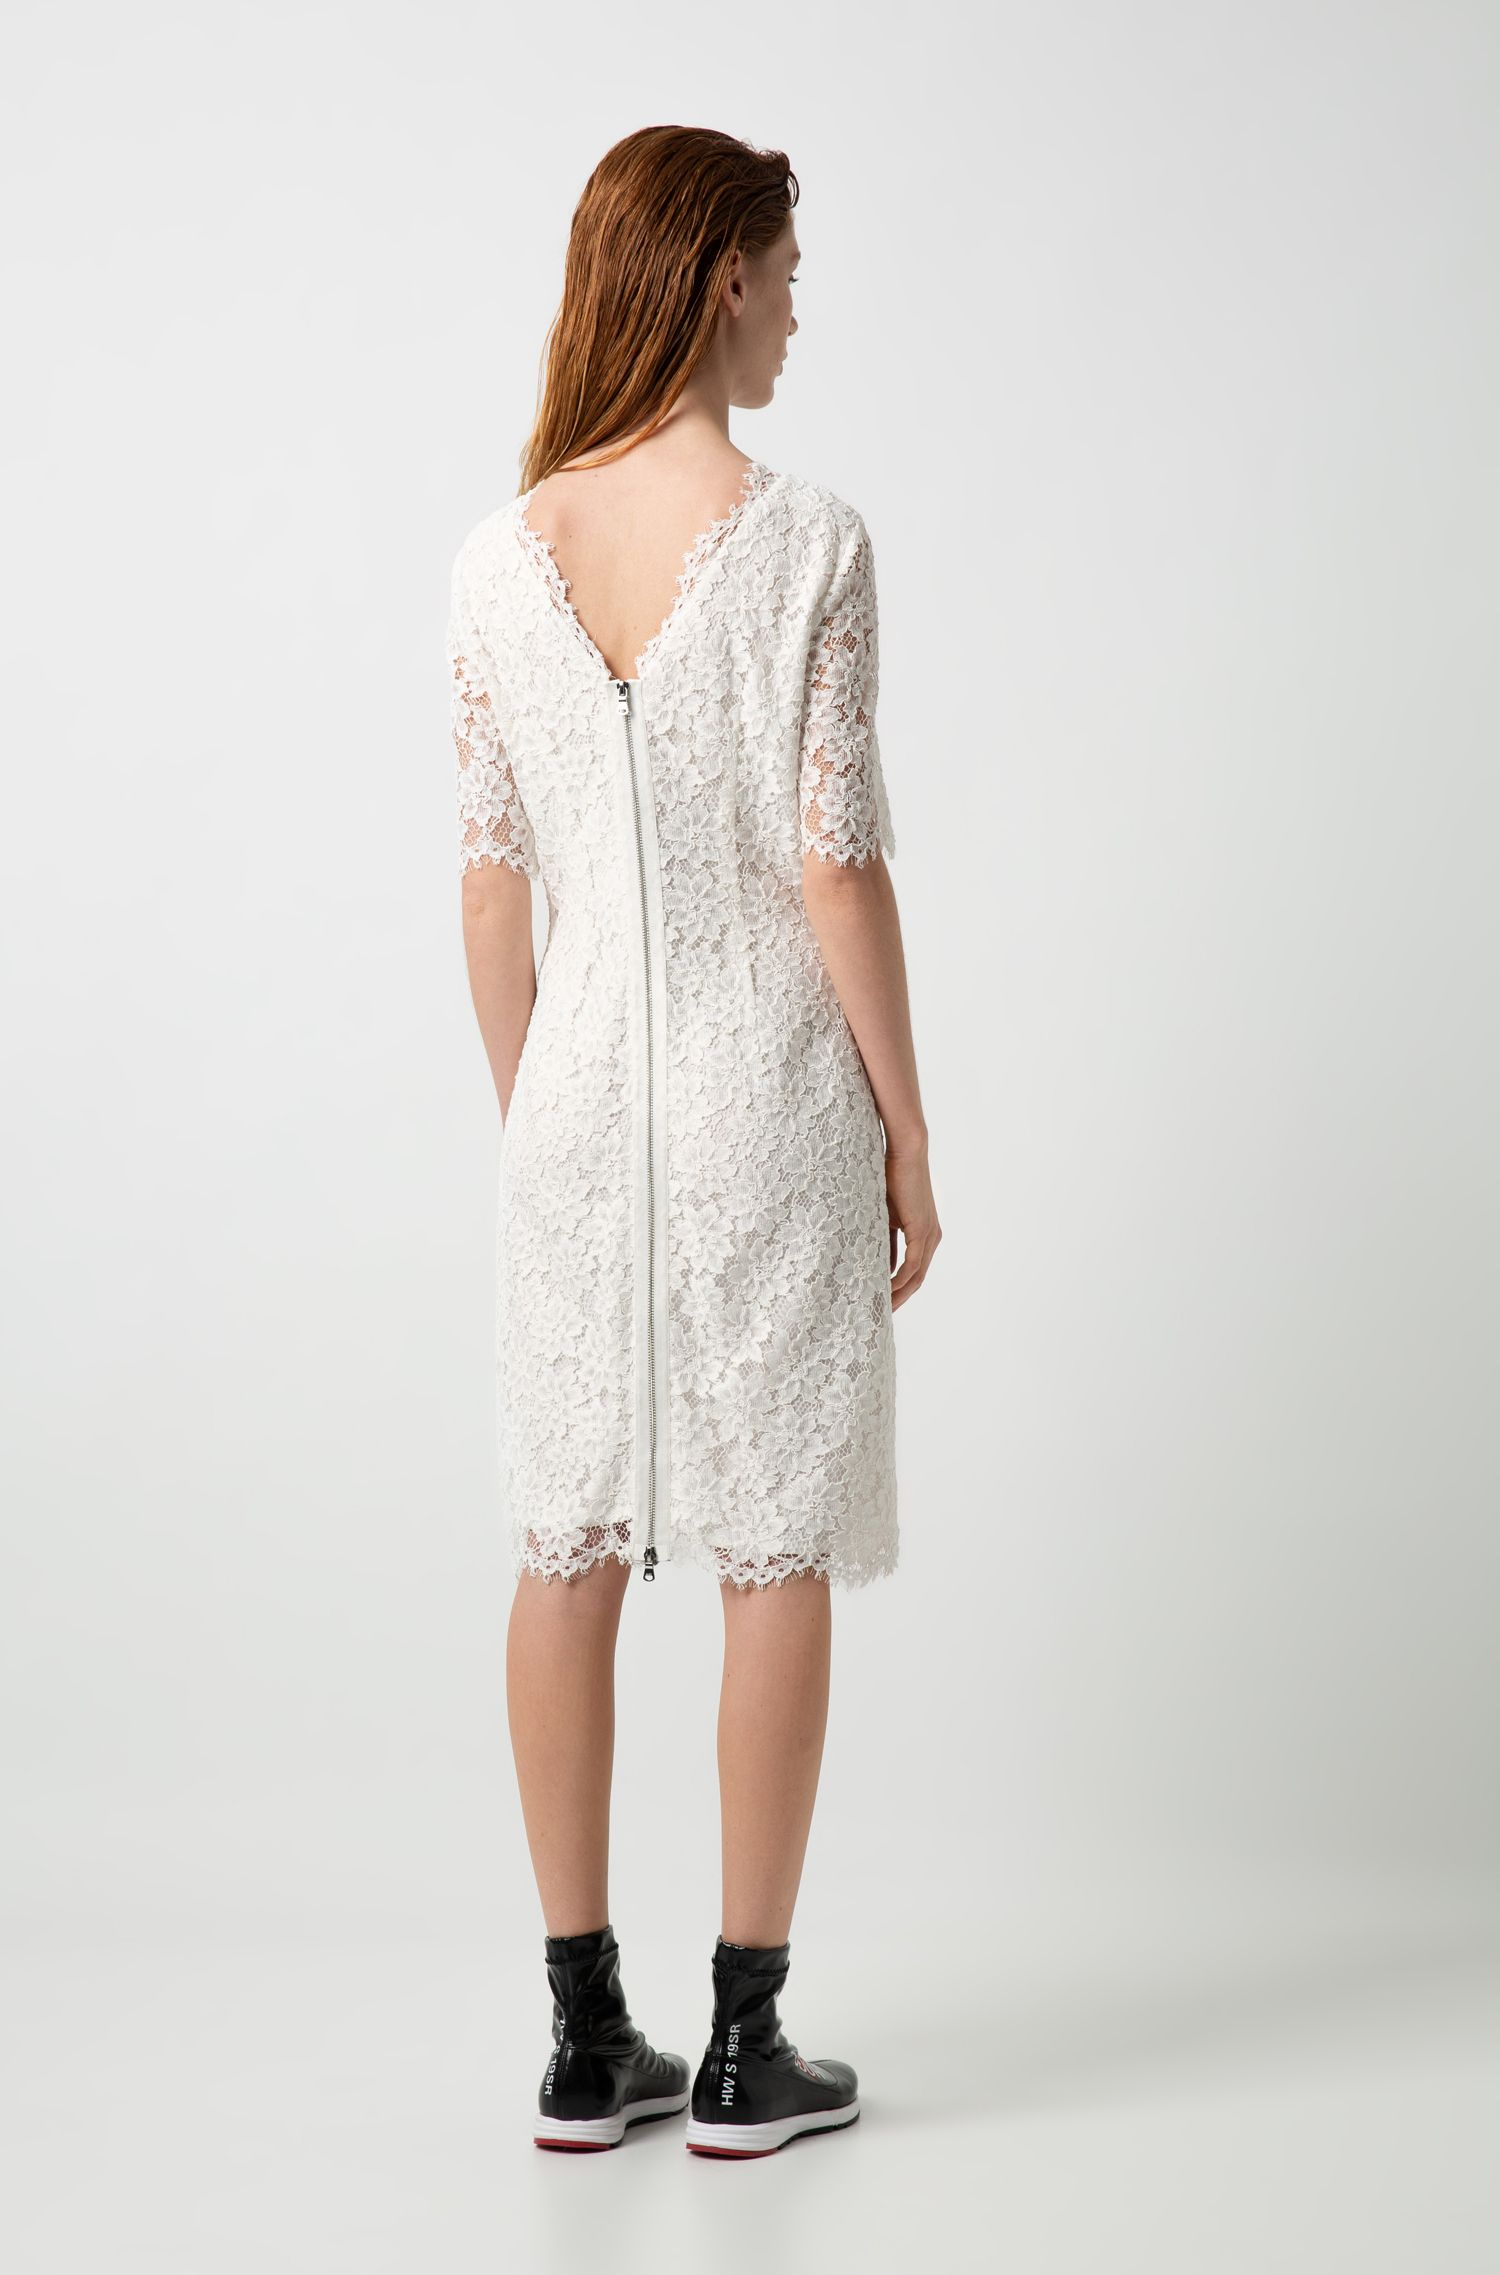 Lace A-line dress with V-cut back and exposed zip, Patterned